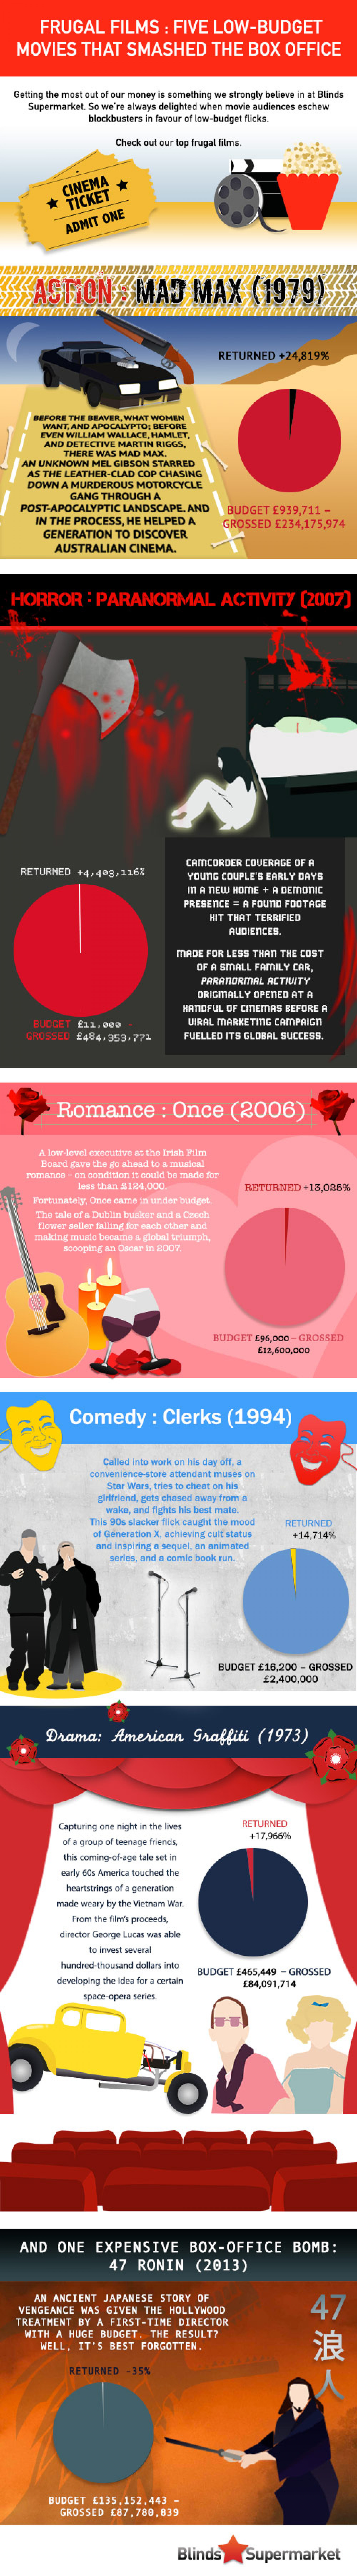 Frugal Films Infographic